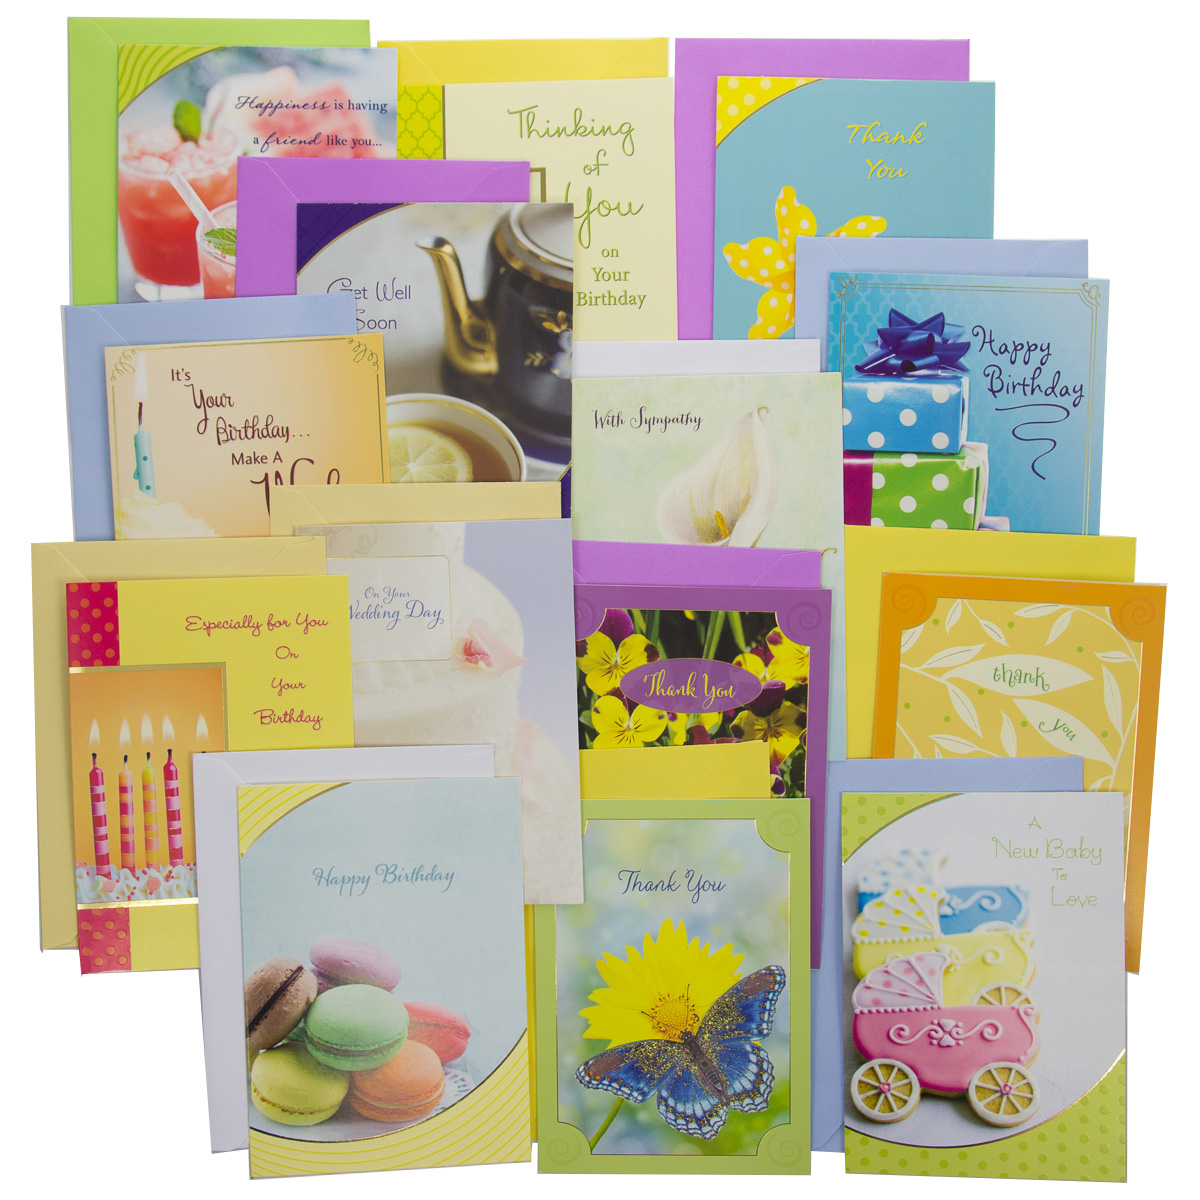 48pk Assortment of Greeting Cards With Color Envelopes For Every Occasions Birthday Thinking of You Sympathy Box Set